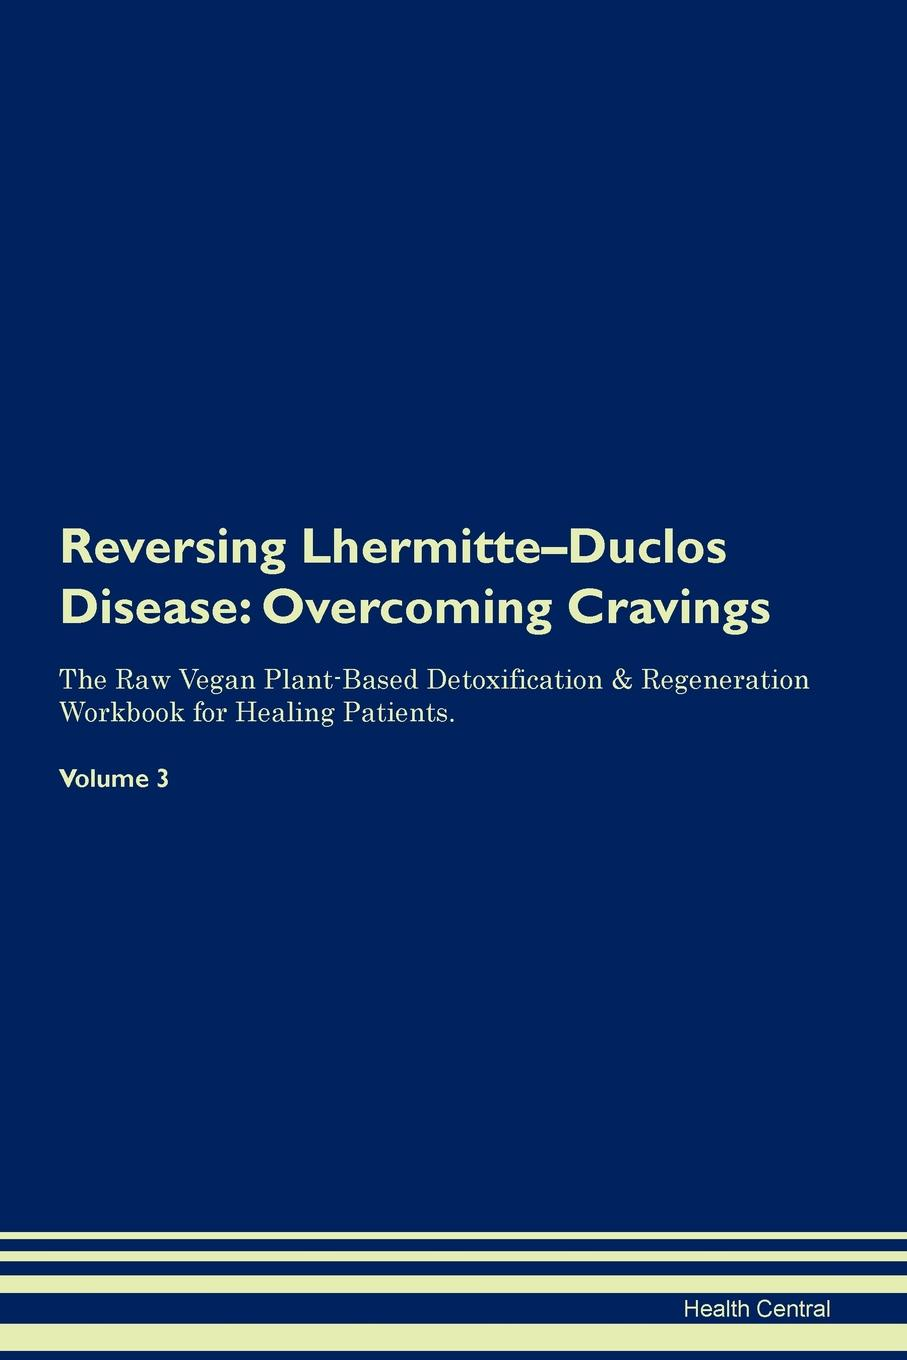 Фото - Health Central Reversing Lhermitte-Duclos Disease. Overcoming Cravings The Raw Vegan Plant-Based Detoxification & Regeneration Workbook for Healing Patients. Volume 3 health central reversing extramammary paget s disease overcoming cravings the raw vegan plant based detoxification regeneration workbook for healing patients volume 3